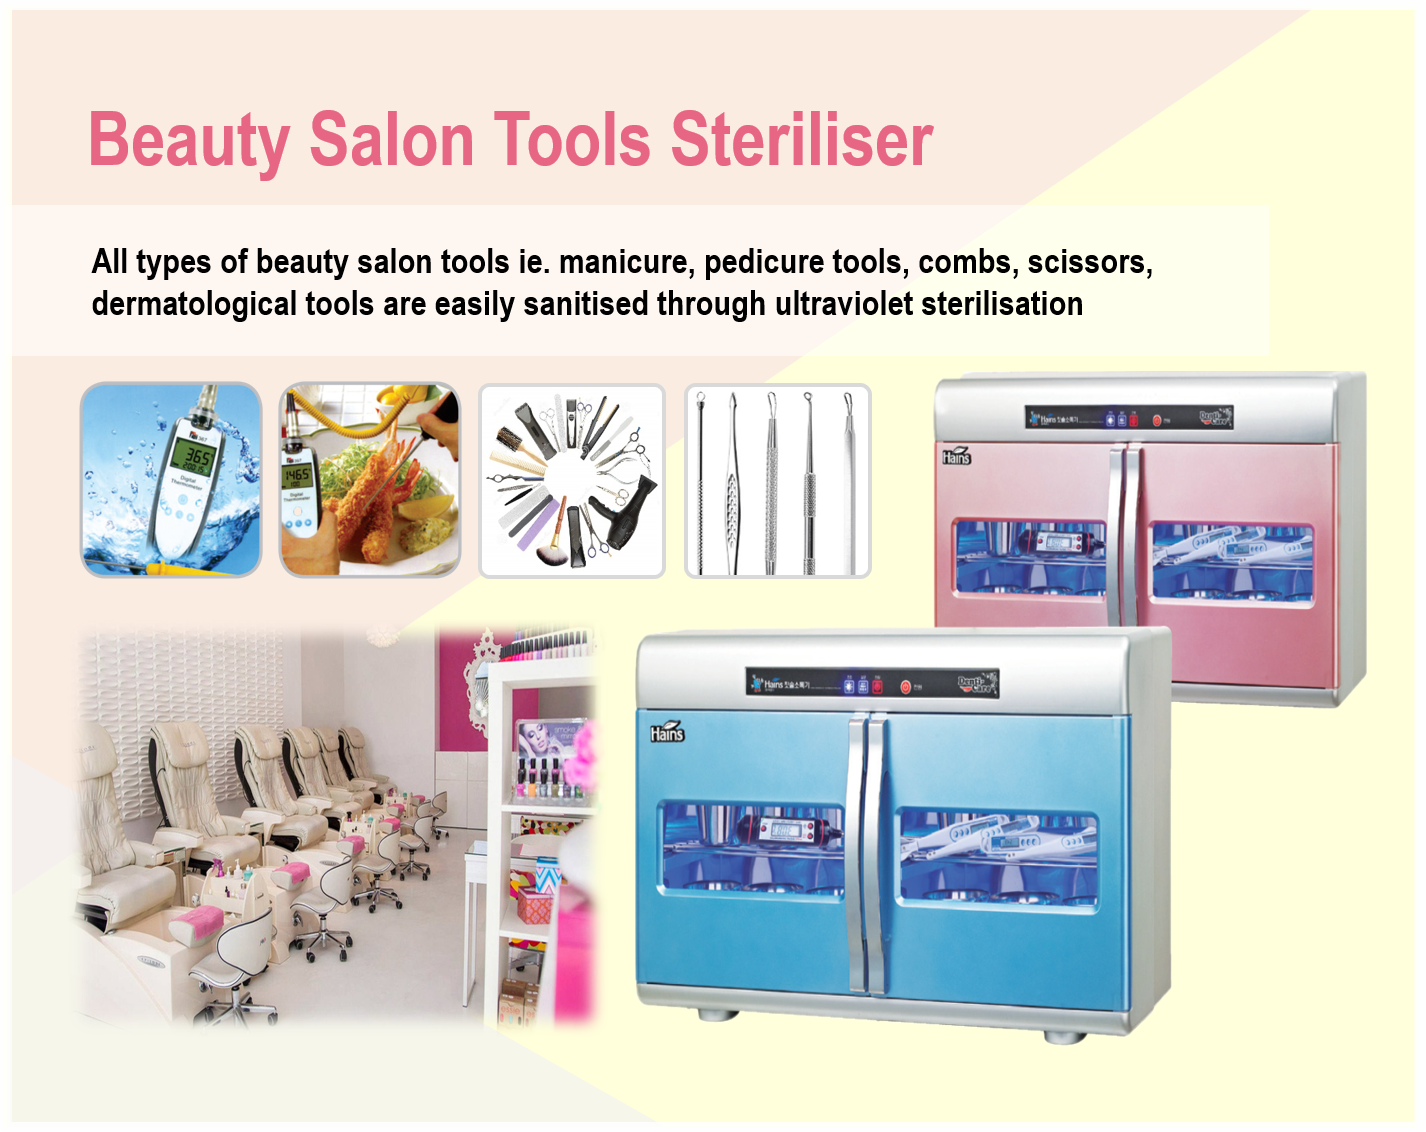 Beauty Salon Tools Steriliser